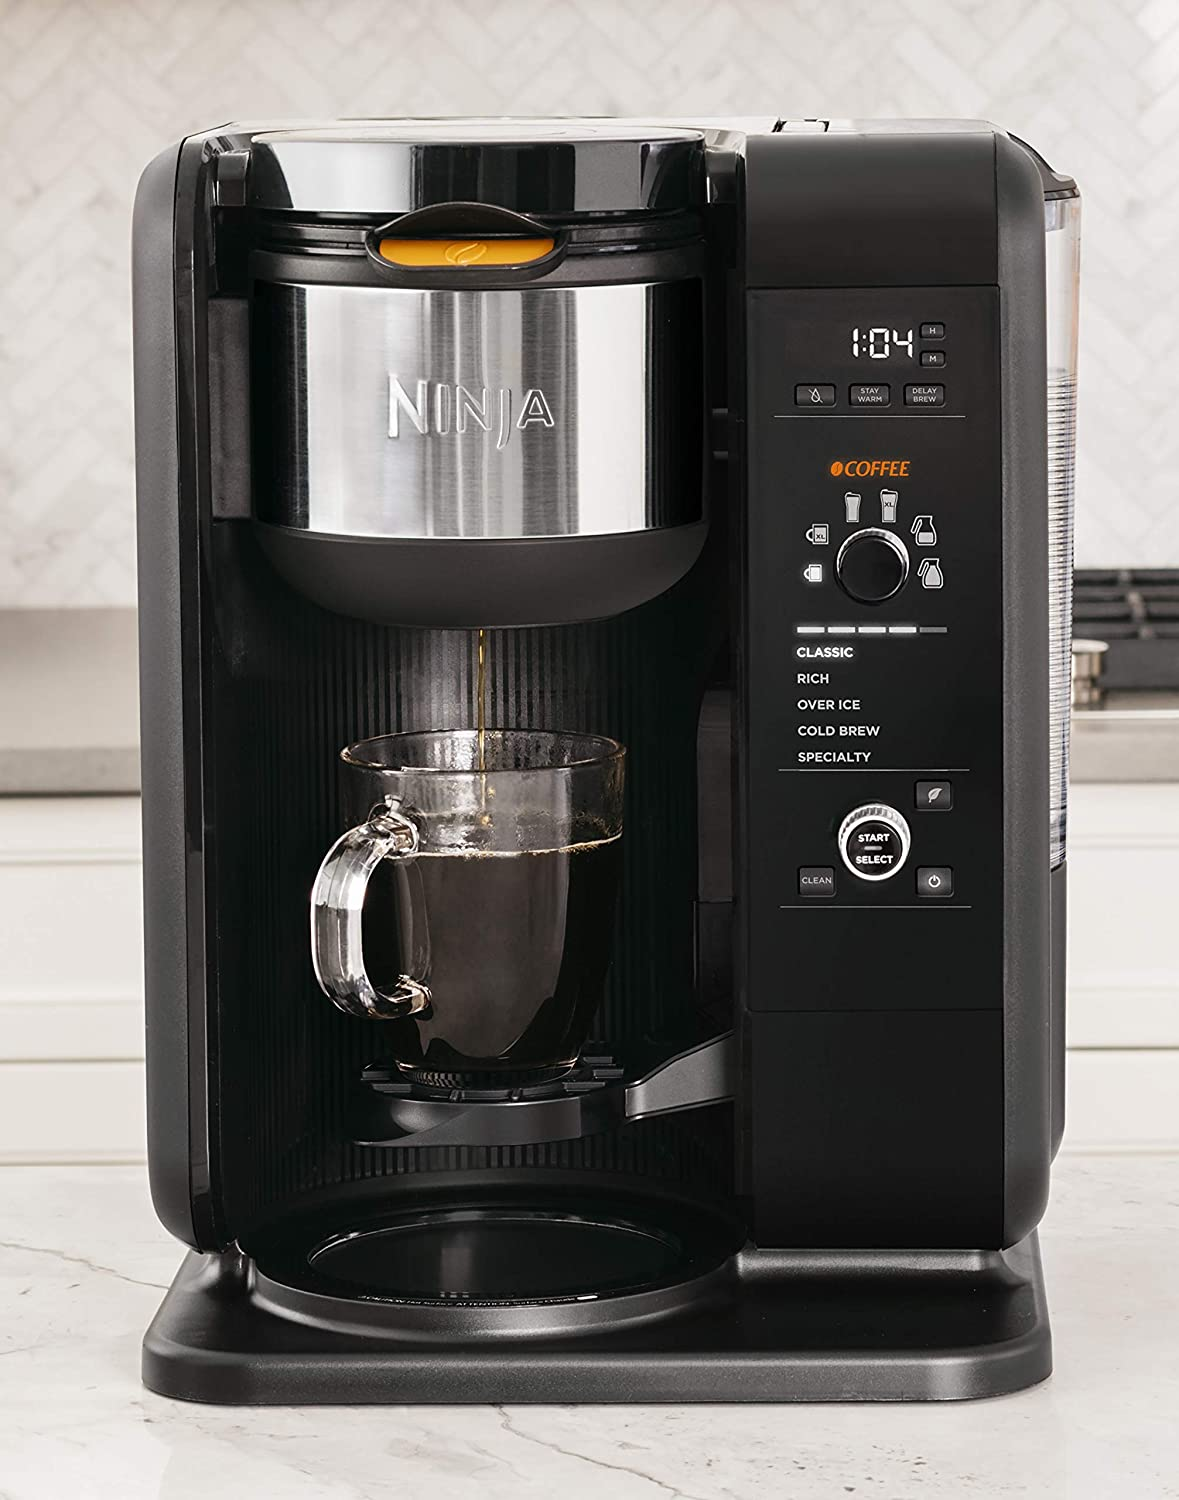 Ninja Hot and Cold Brewed System, Auto-iQ Tea and Coffee Maker with 6 Brew Sizes, 5 Brew Styles, Frother, Coffee & Tea Baskets with Glass Carafe ...